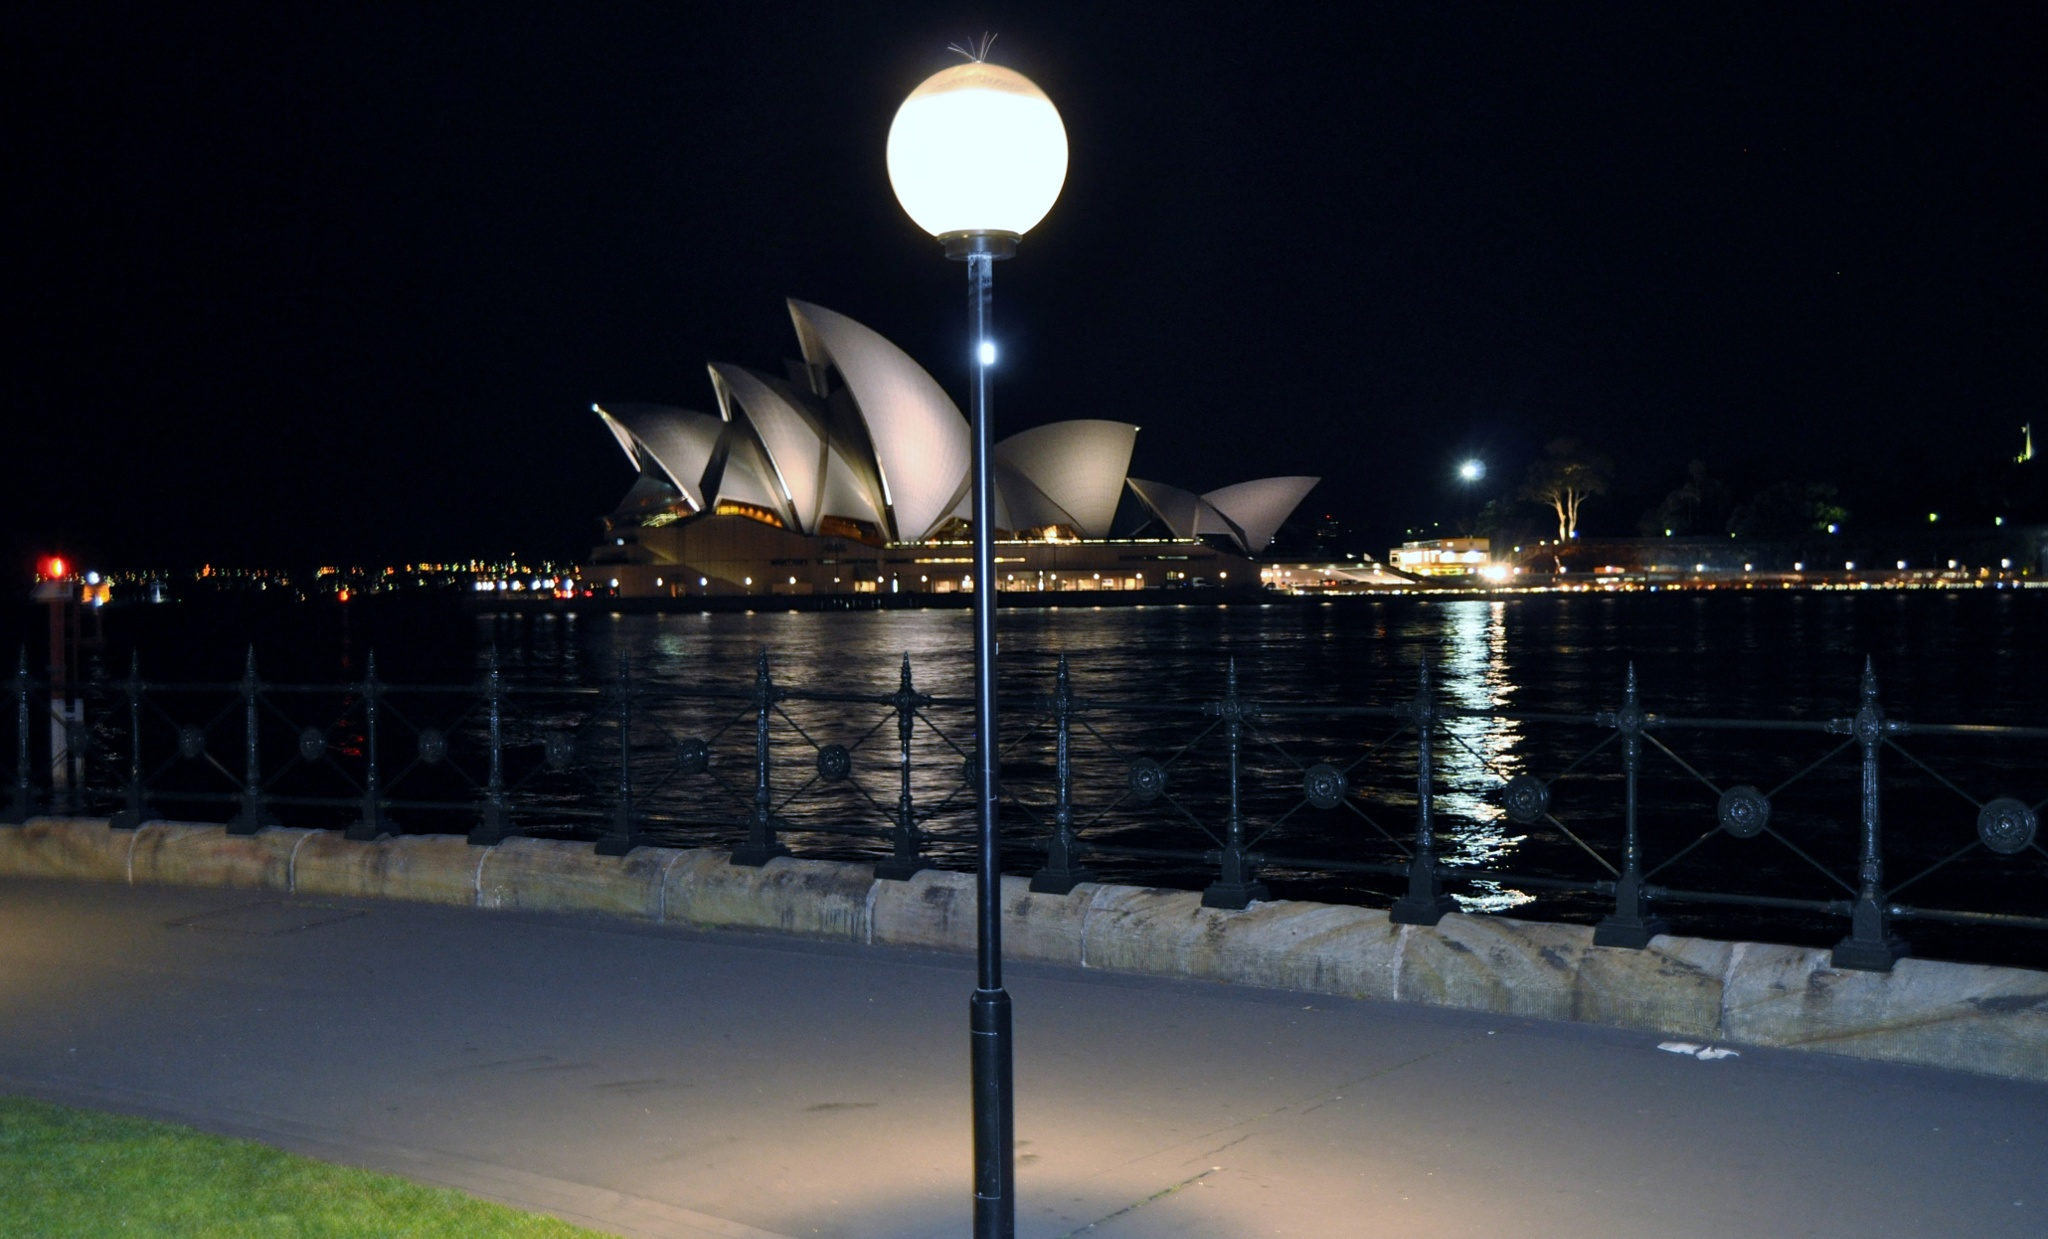 Ligth and Operahouse by stefan pettersson